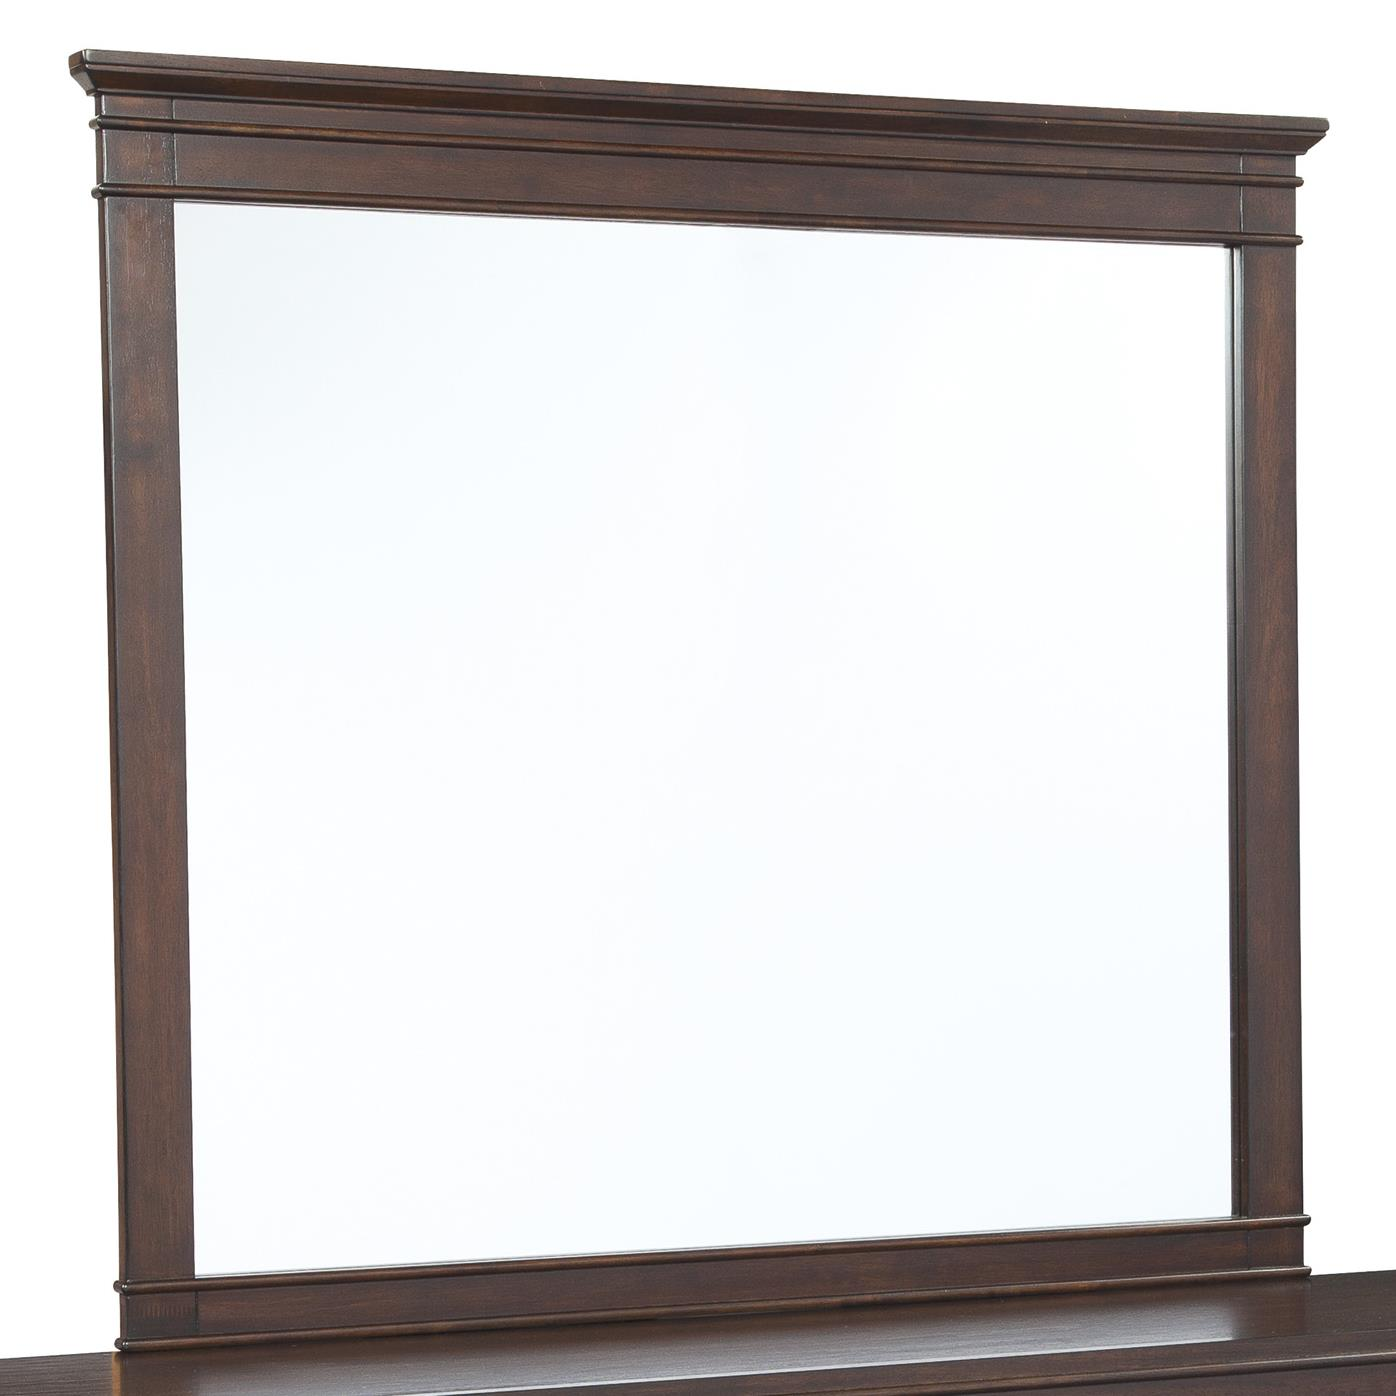 Signature Design by Ashley Timbol Bedroom Mirror - Item Number: B508-36